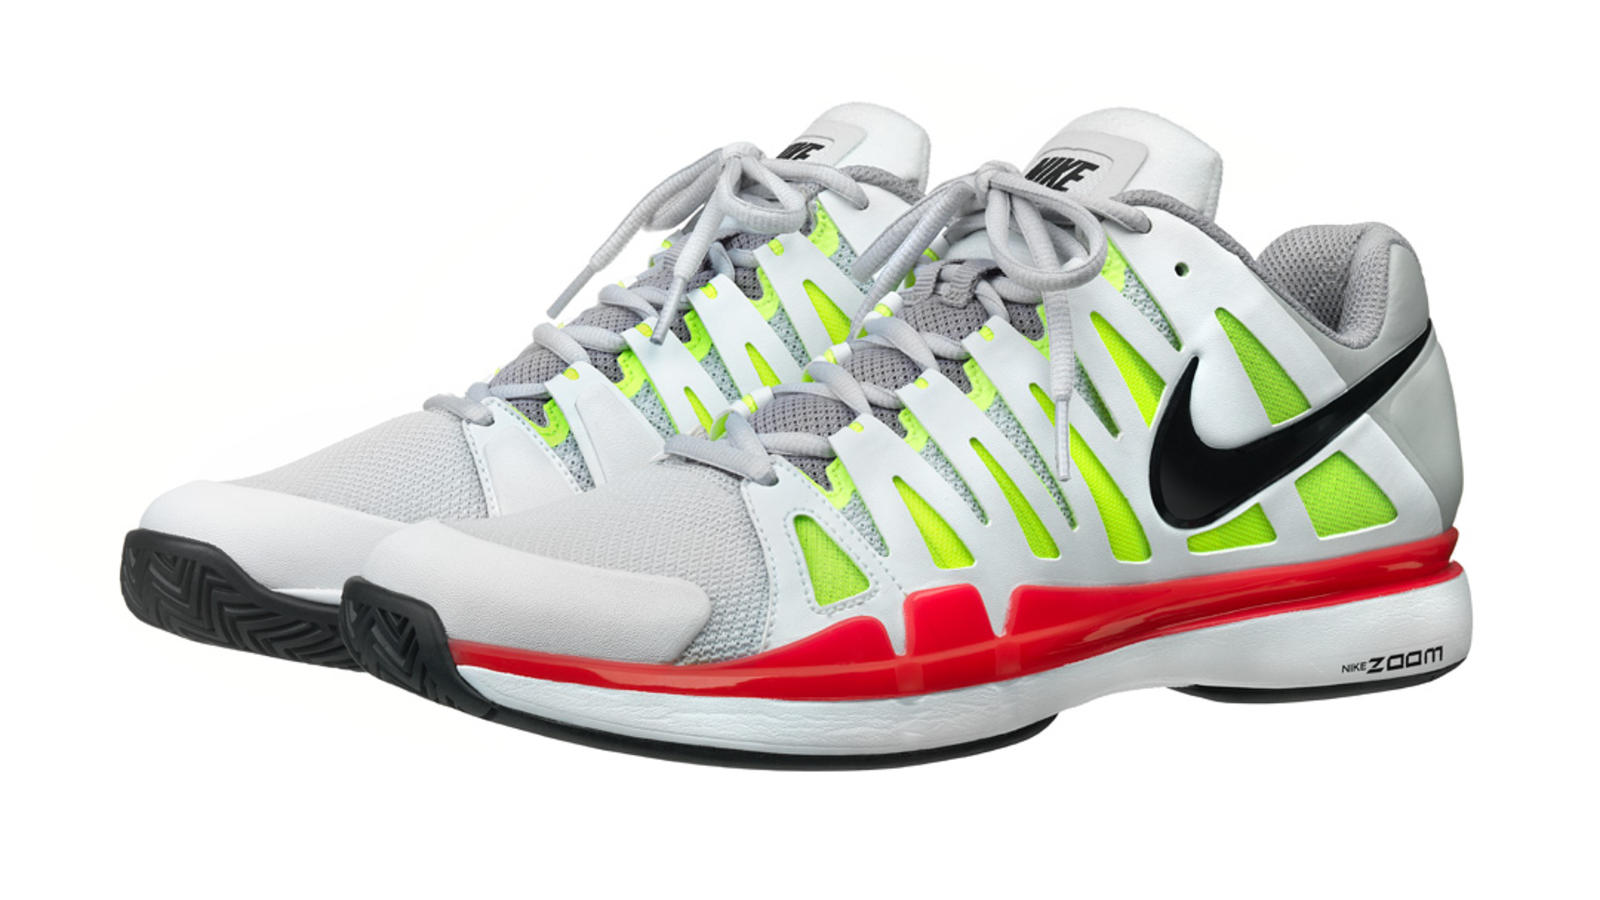 da2eb83a01ccf Nike Tennis delivers breakthrough innovation with NIKE Zoom Vapor 9 ...